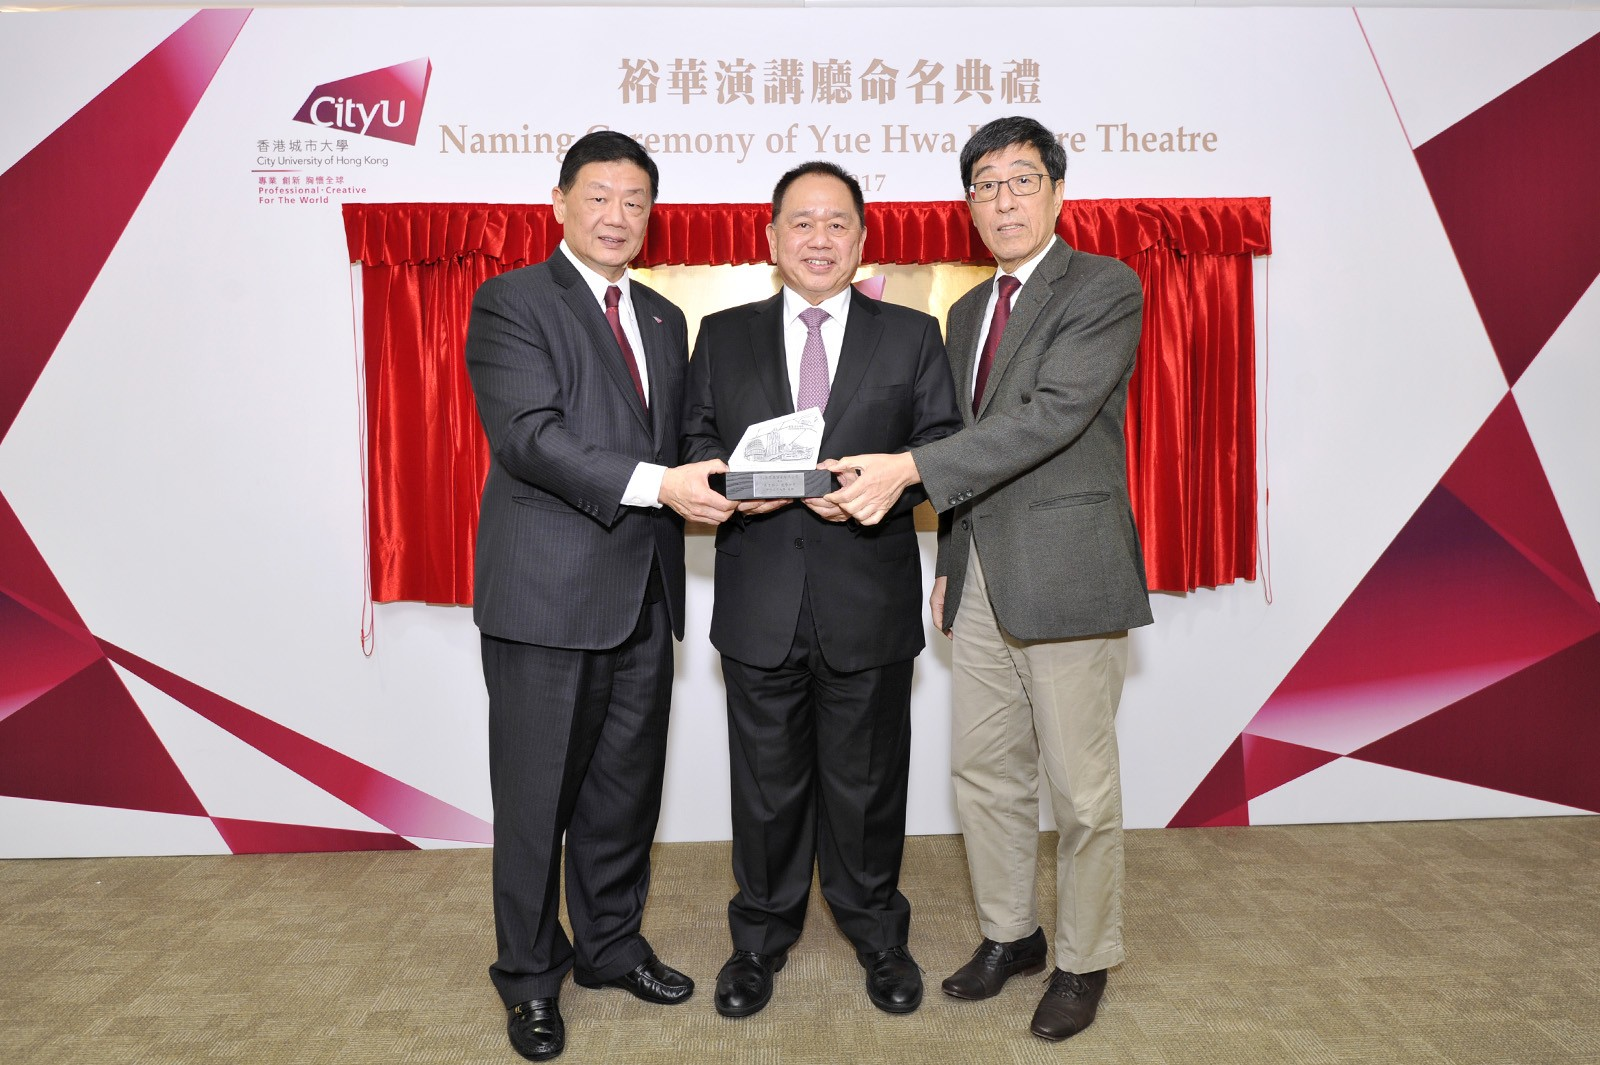 Mr Hu (left) and Professor Kuo (right) present a souvenir to Dr Yu.